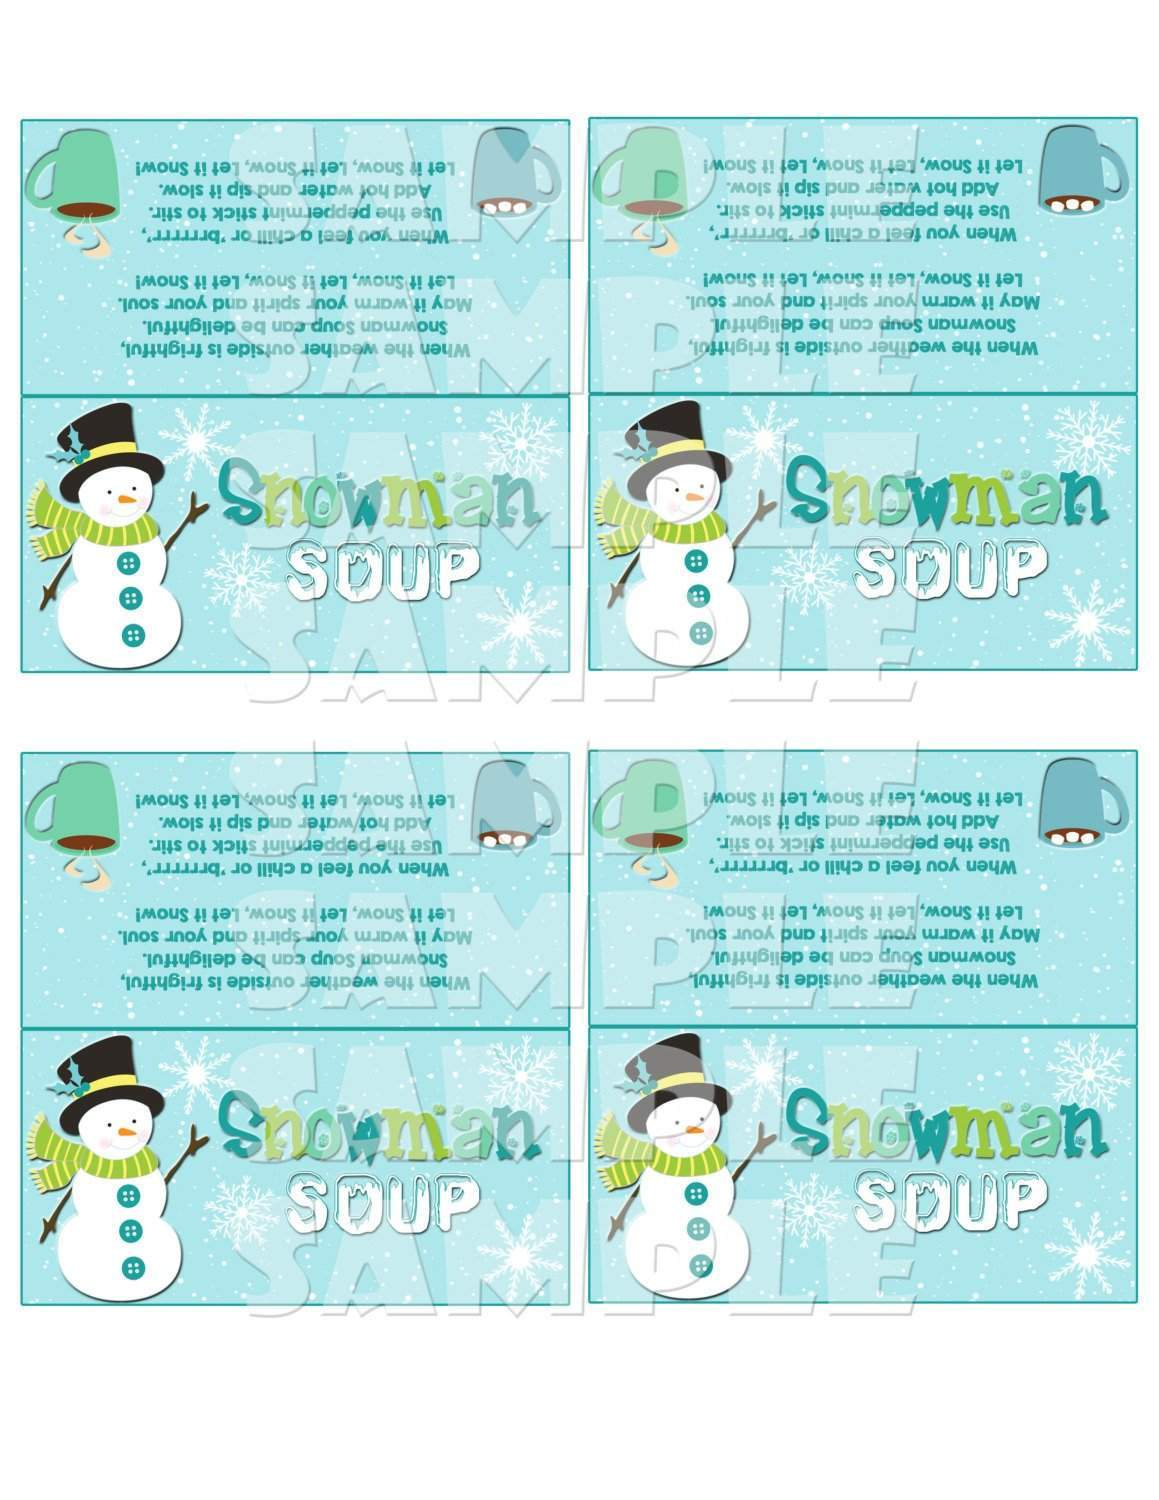 photograph relating to Free Printable Snowman Soup Labels known as Xmas Snowman Soup Handle Bag Toppers